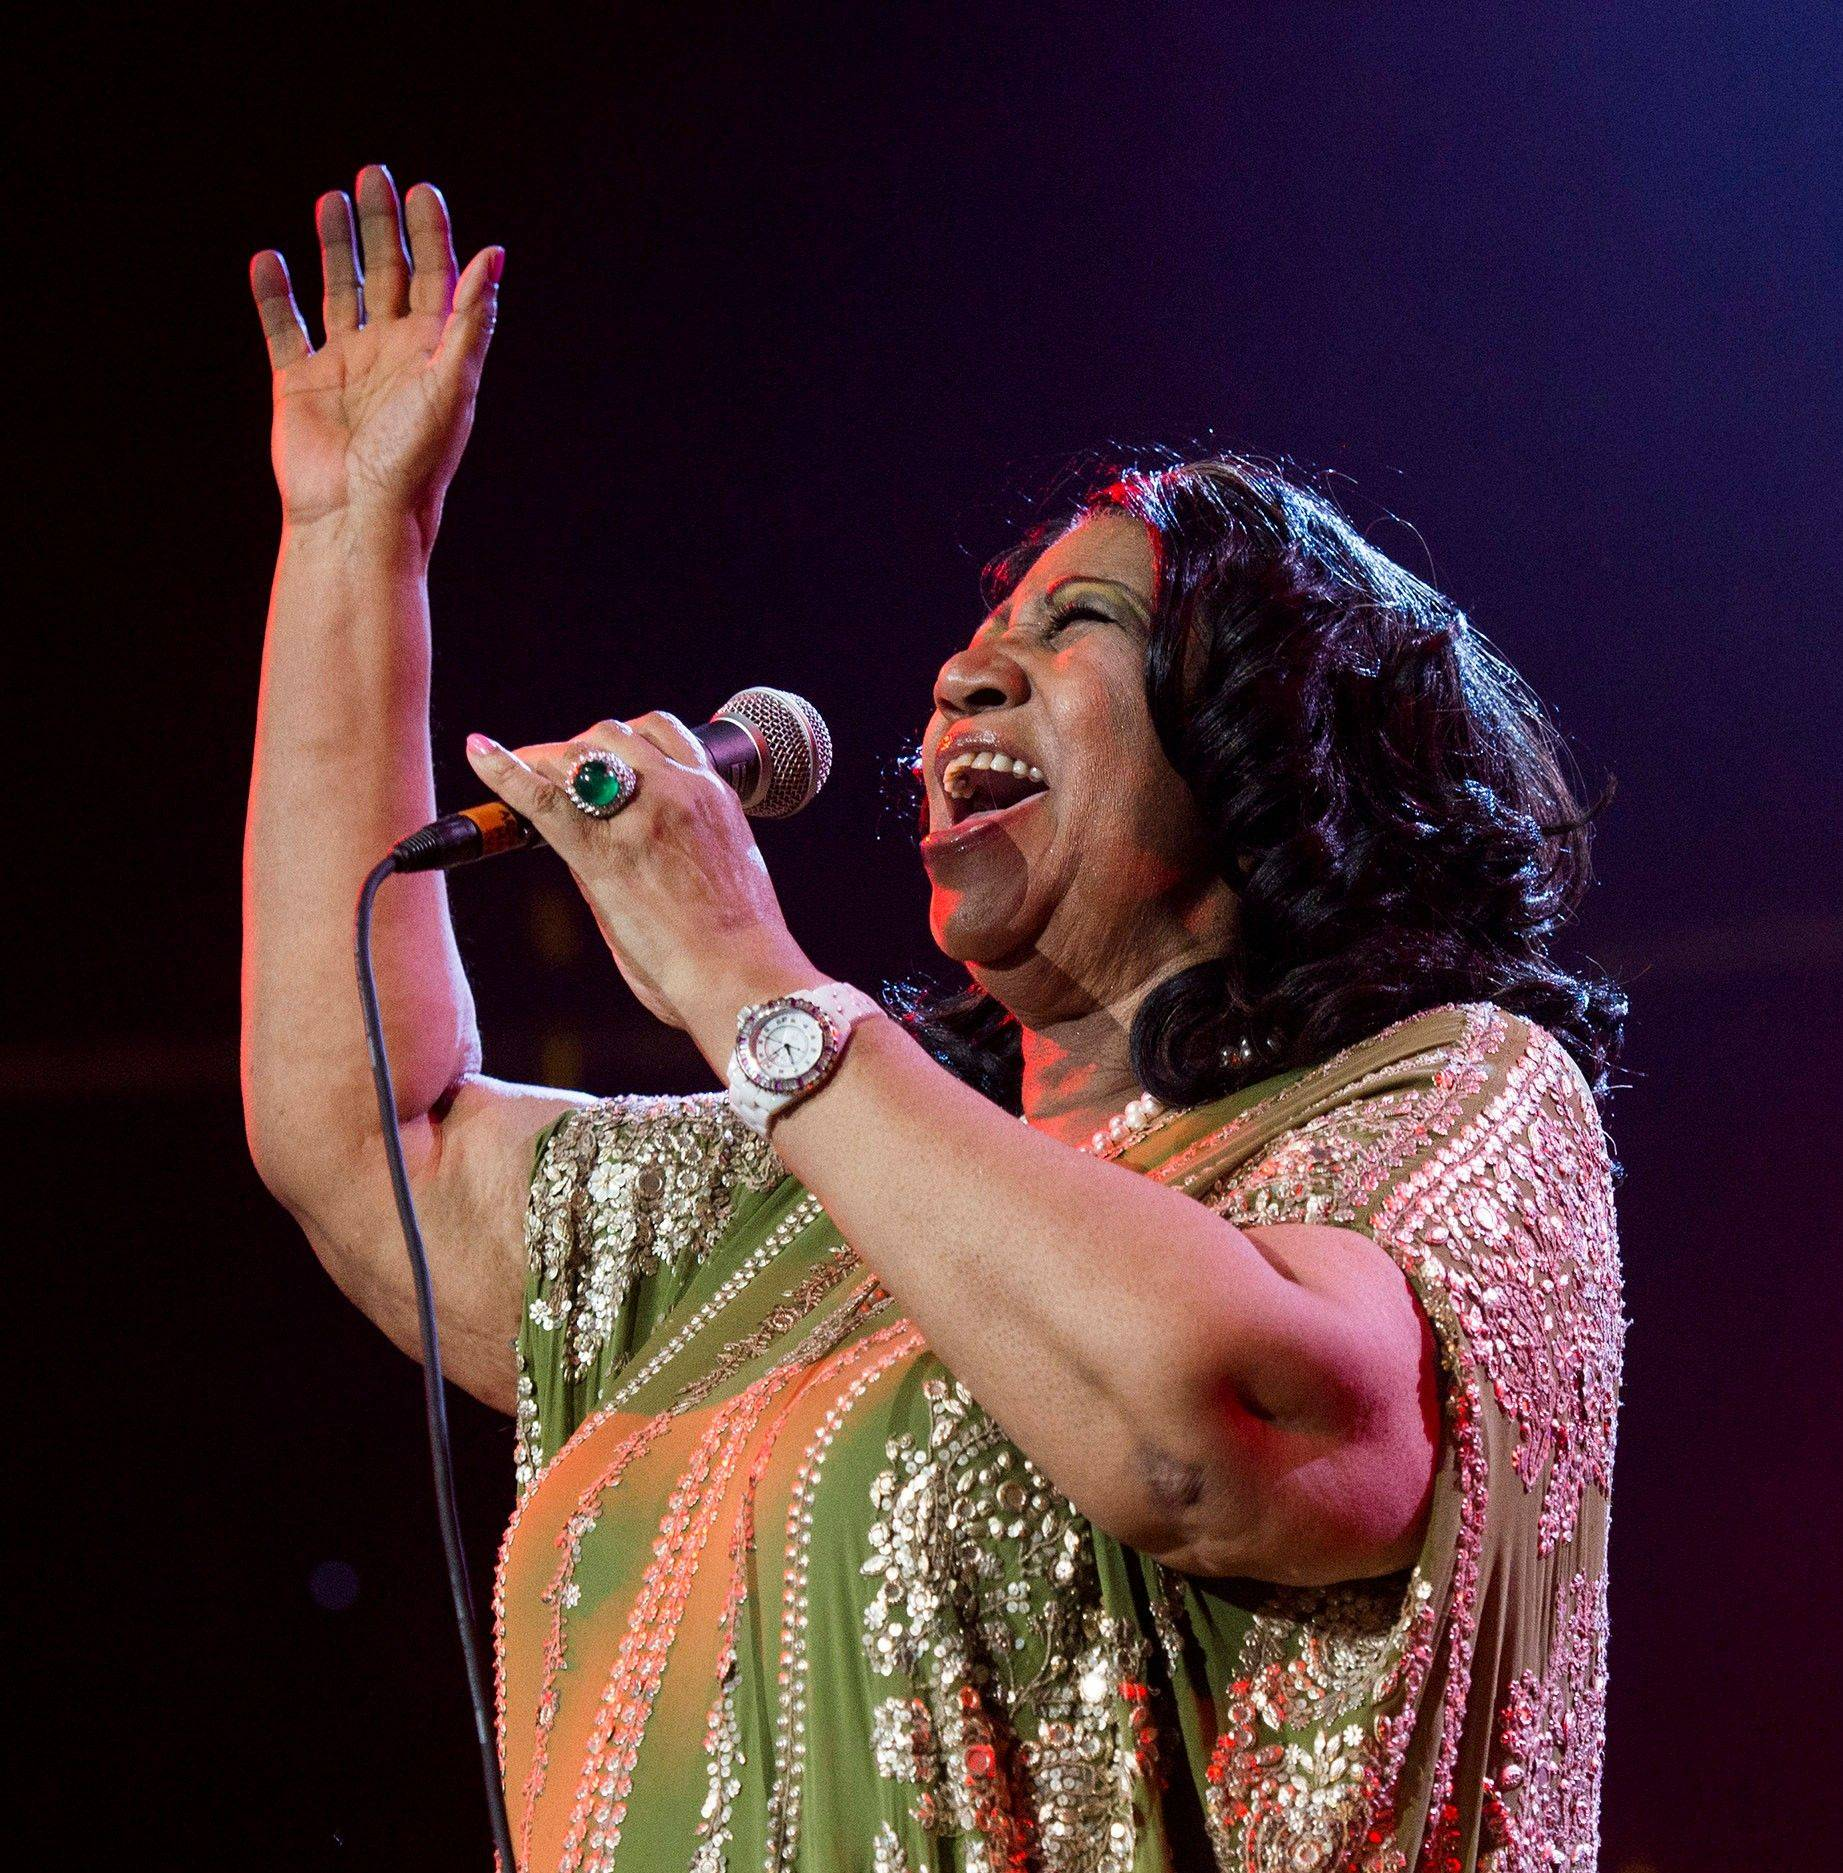 Aretha Franklin has canceled performances in Chicago on May 20 under a doctor's recommendation for treatment. It's unclear what she�s being treated for.